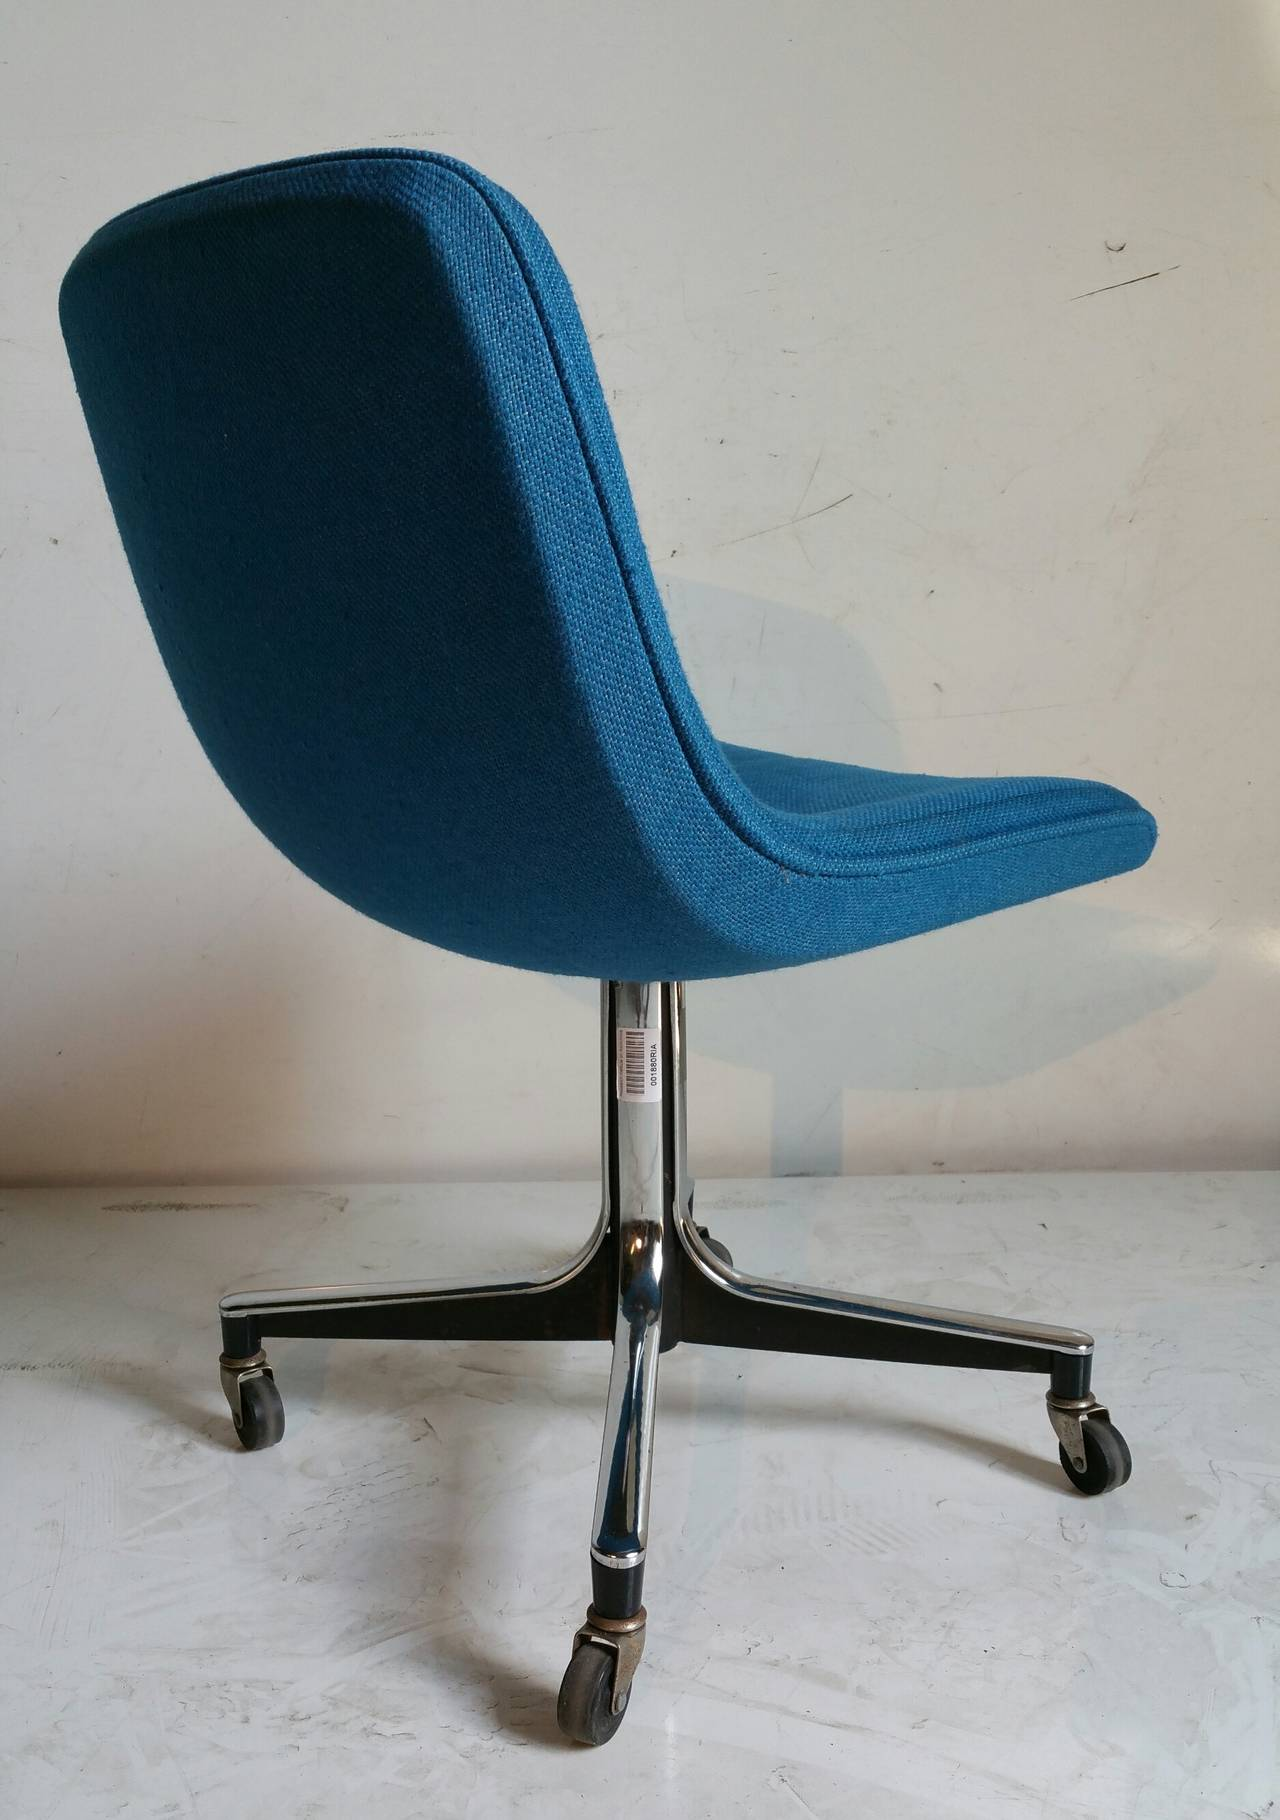 Roller Chairs Goodform Rolling Desk Chair Mid Century Modern At 1stdibs